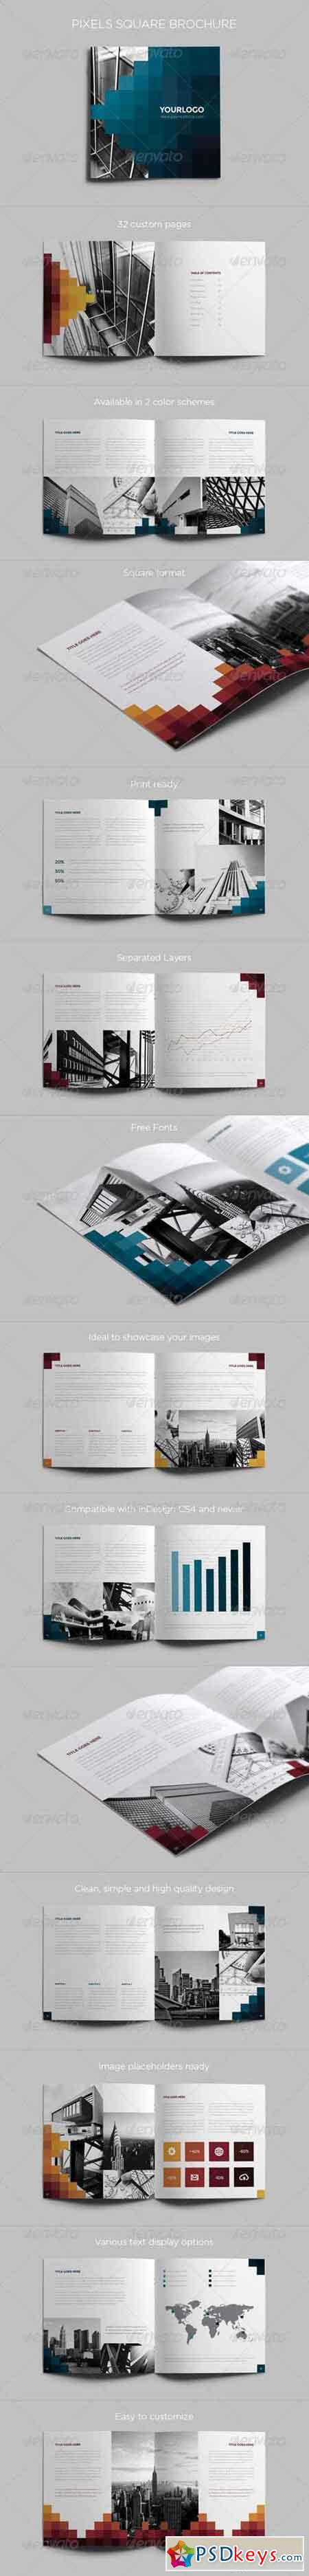 Pixels Square Brochure 6586956